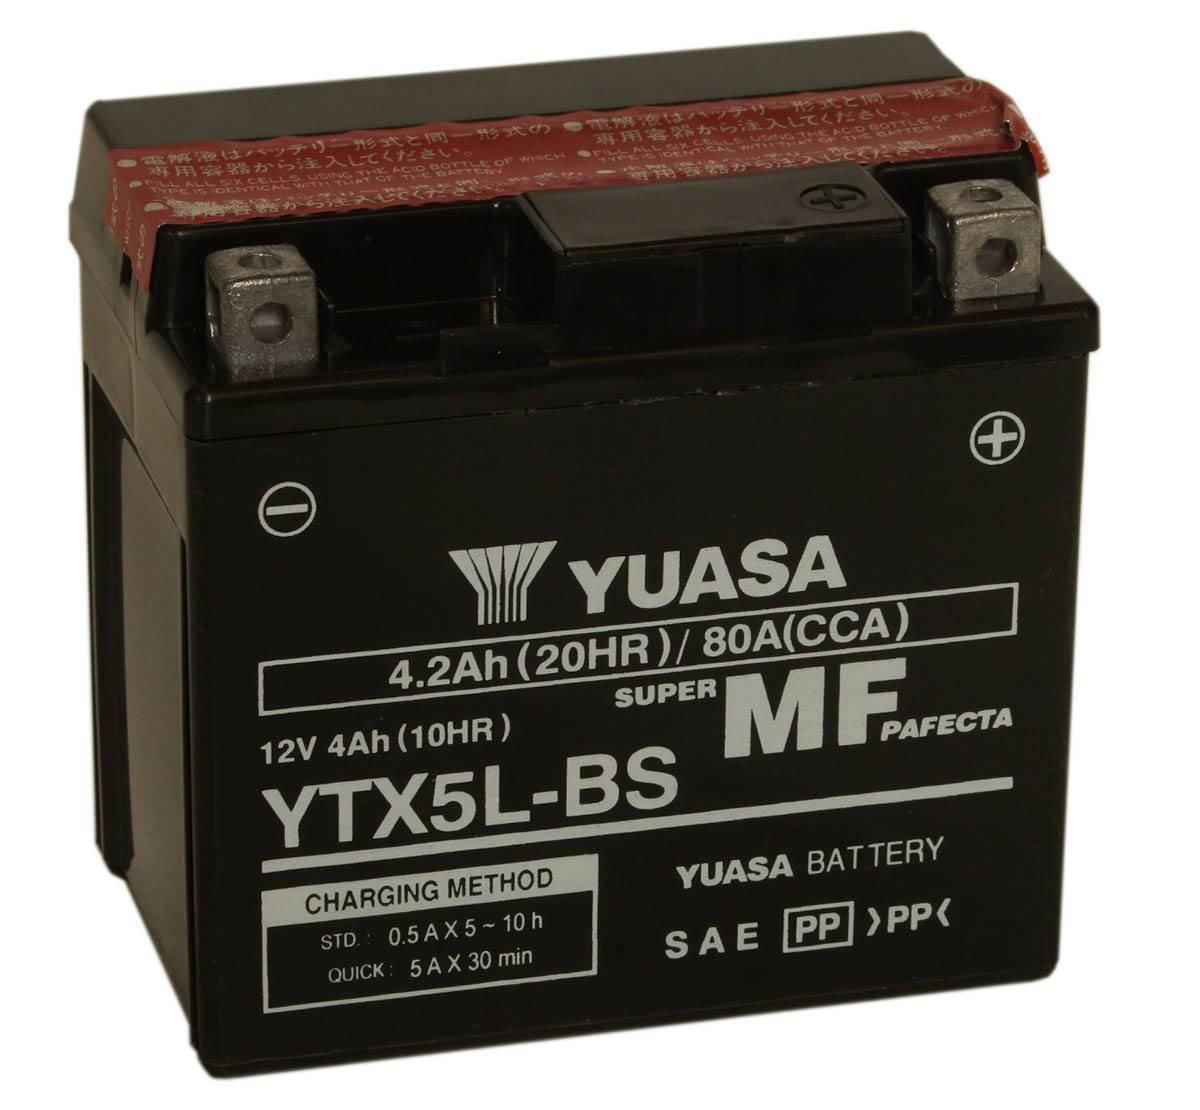 Get it delivered to your door - Yuasa YTX5L-BS (Taiwan) - 480 (EGP)